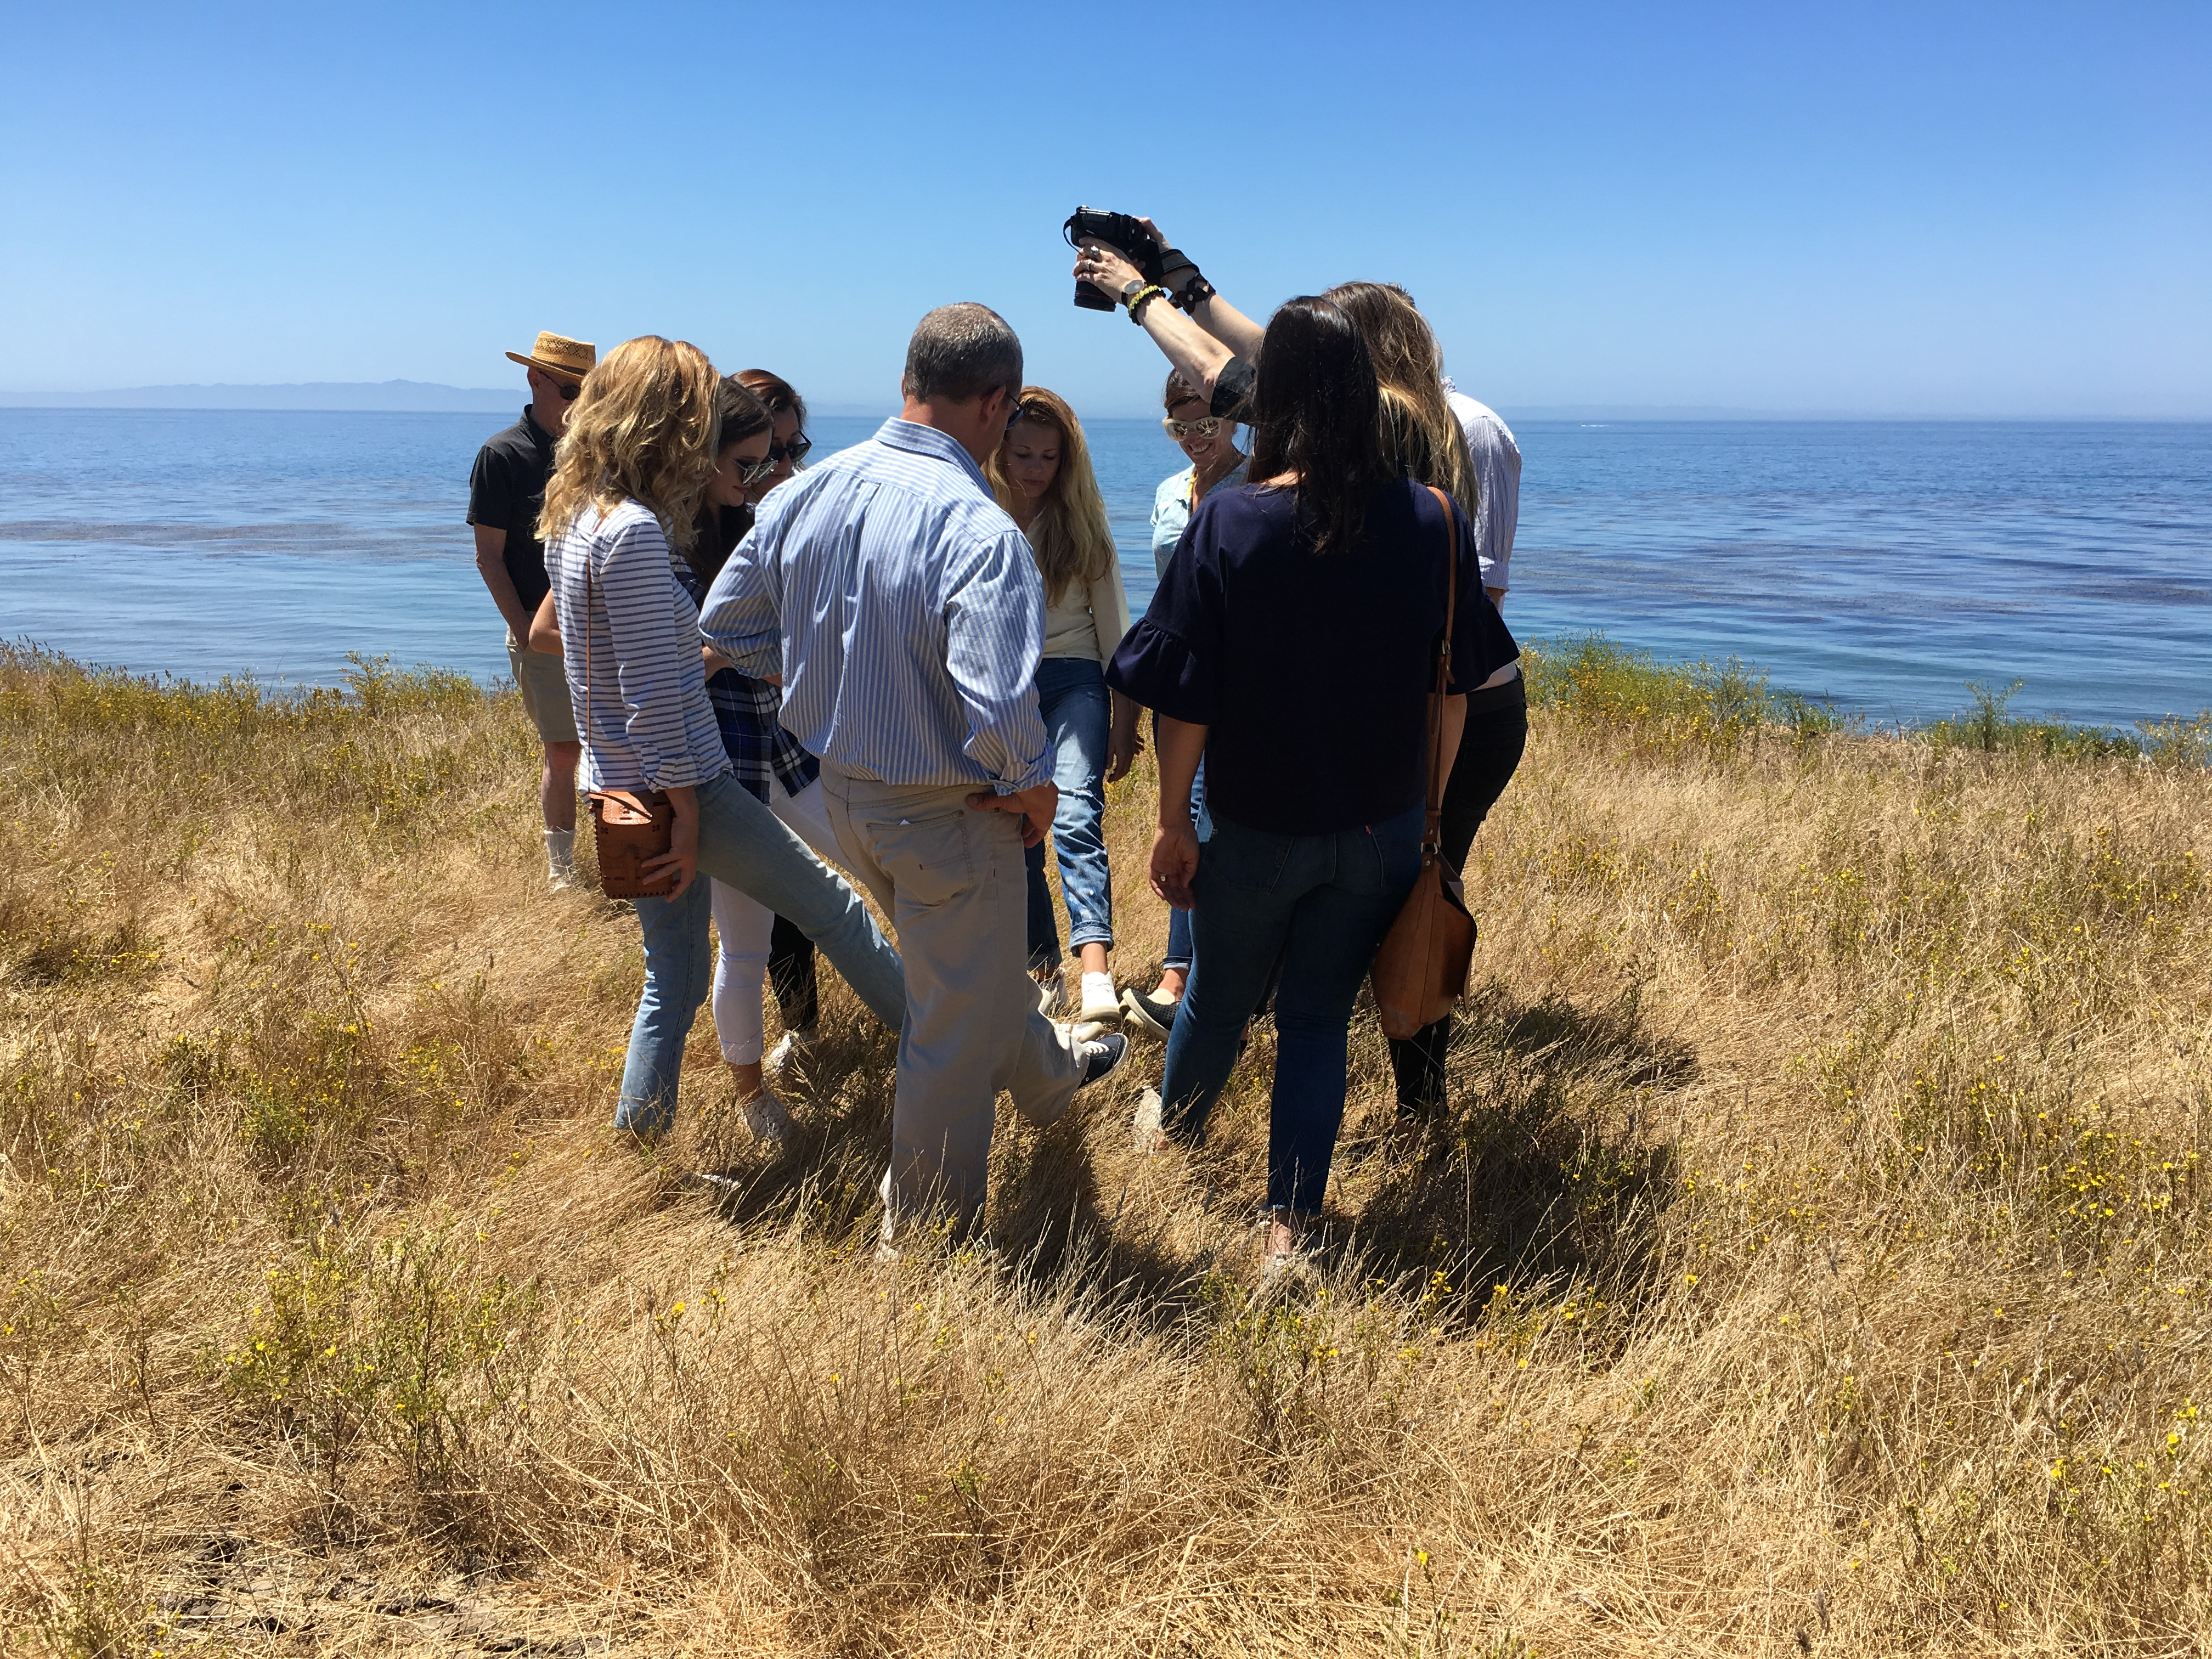 Copy_of_SeaVees_employees_celebrate_their_1_Percent_for_the_Planet_sponsorship_of_Gaviota_Coast_Conservancy_at_Naples__2017_by_Janet_Koed.JPG